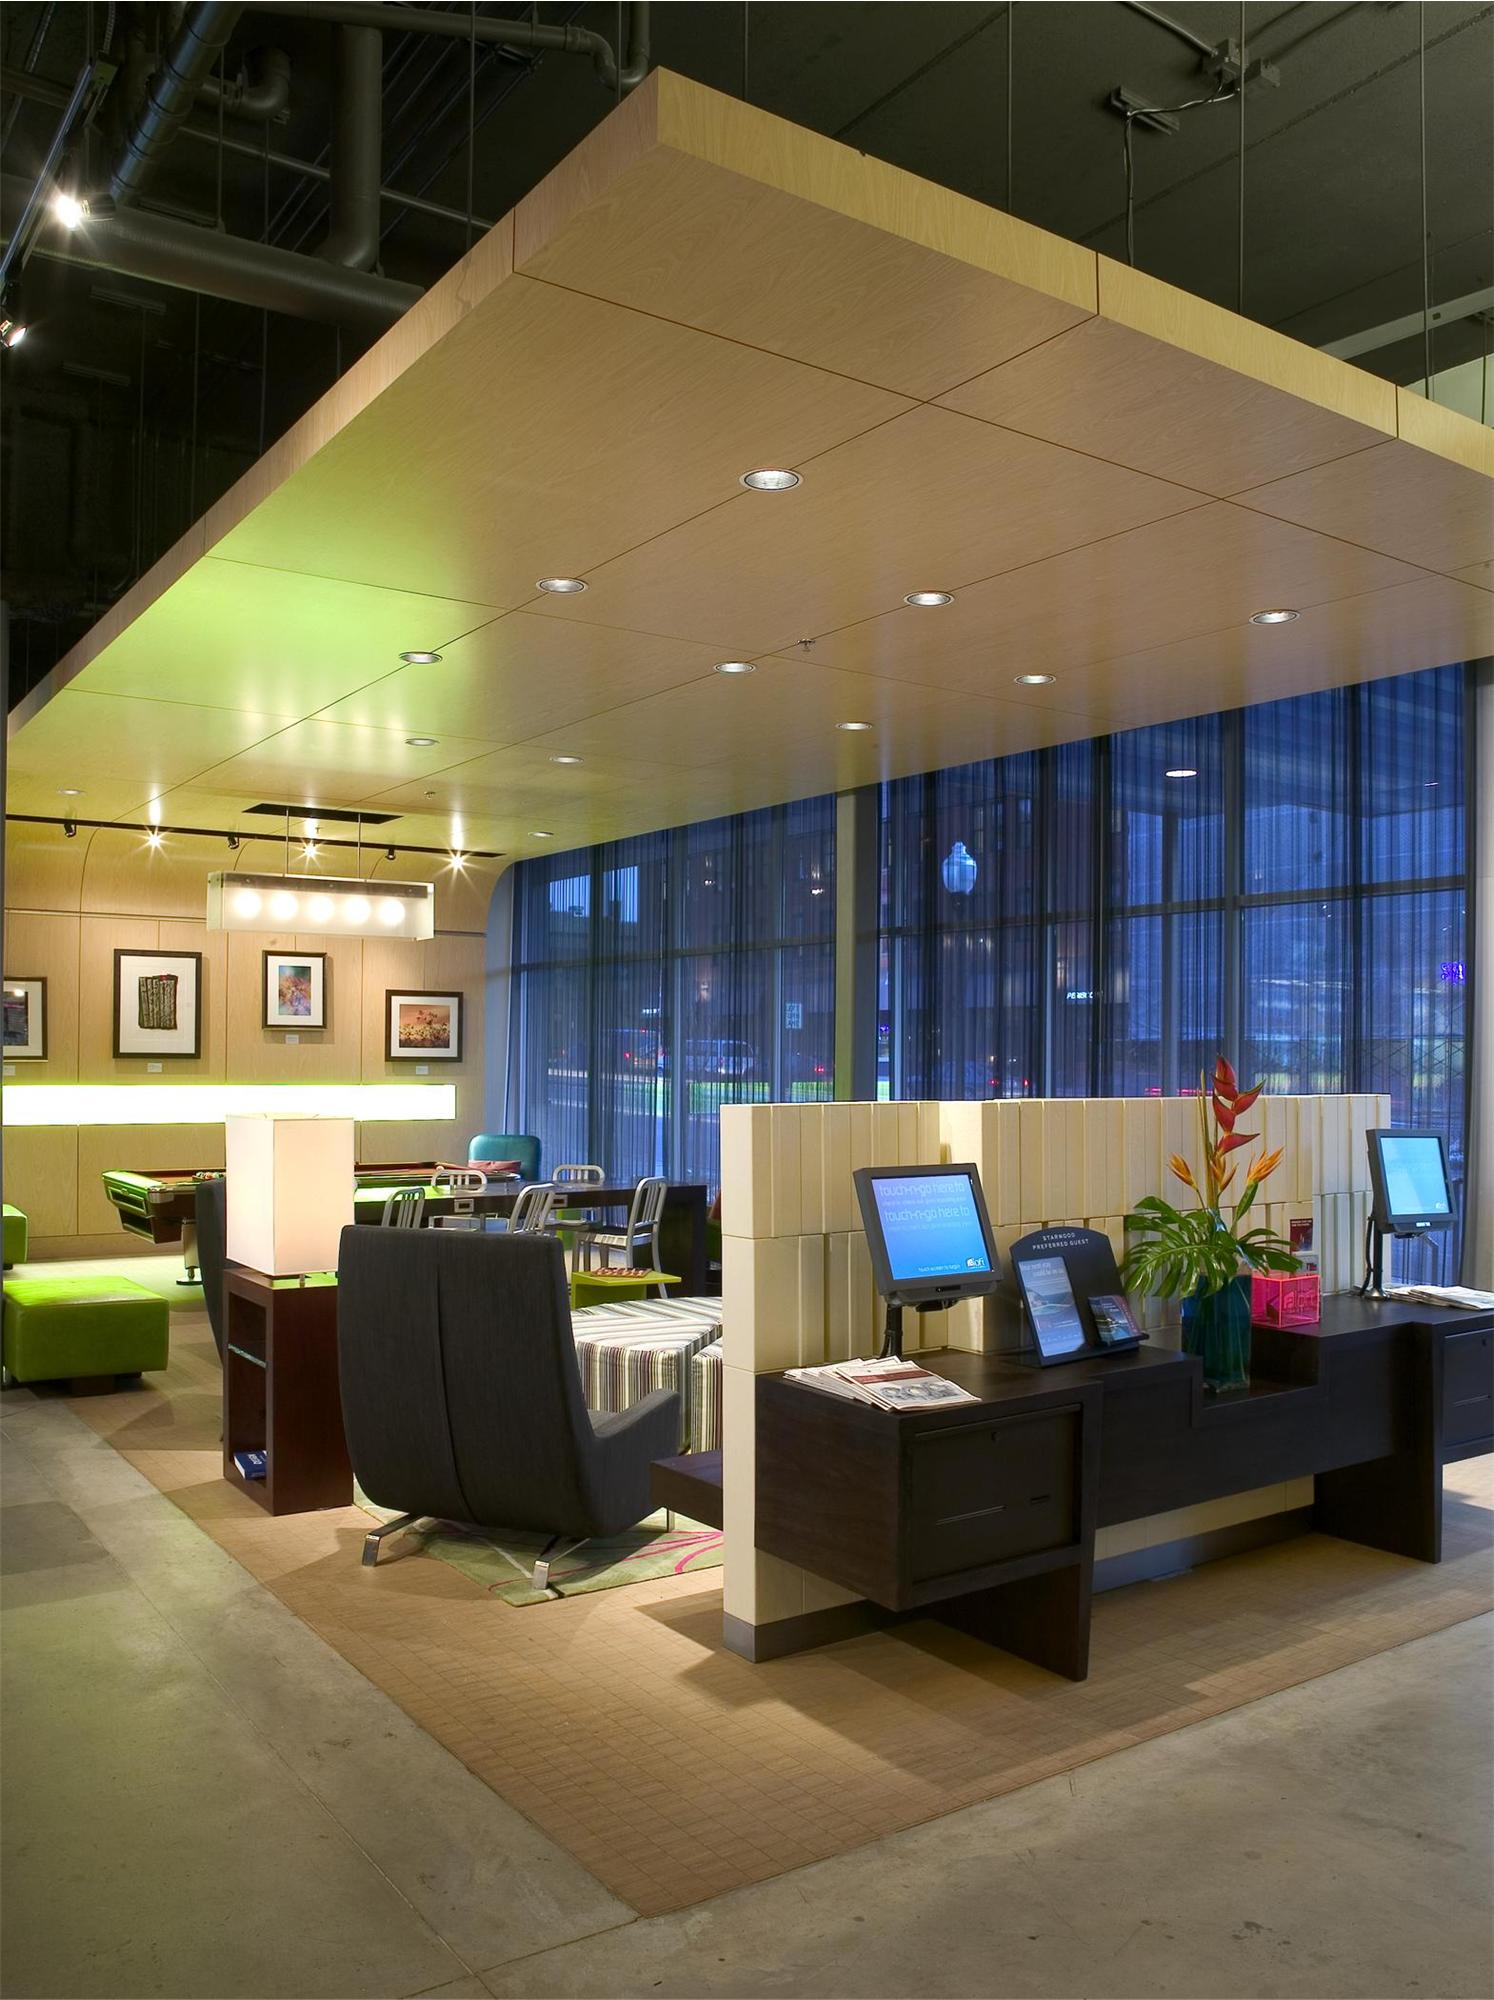 Seating area and a guest computer area in the Aloft Hotel in Minneapolis, MN